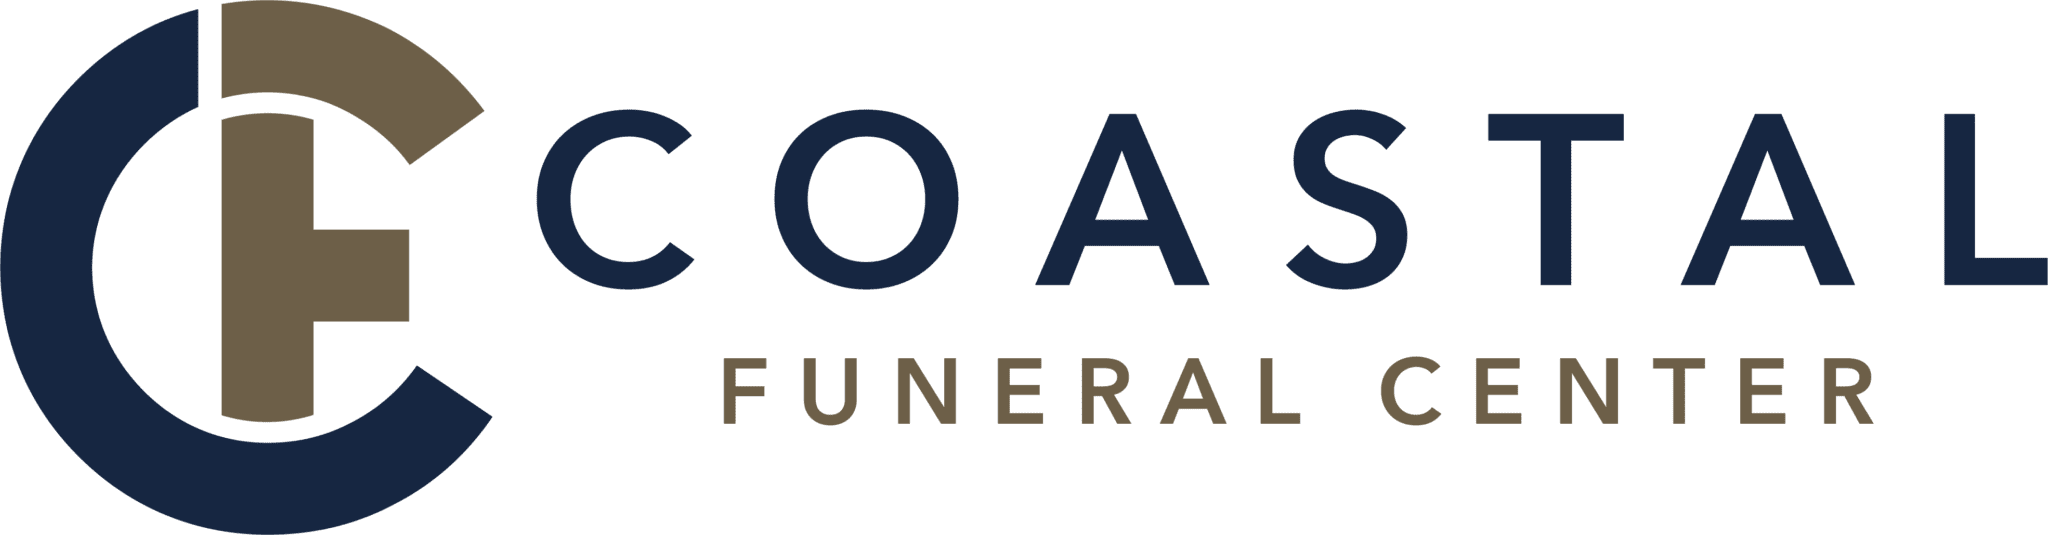 coastal-funeral-center-logo.fw